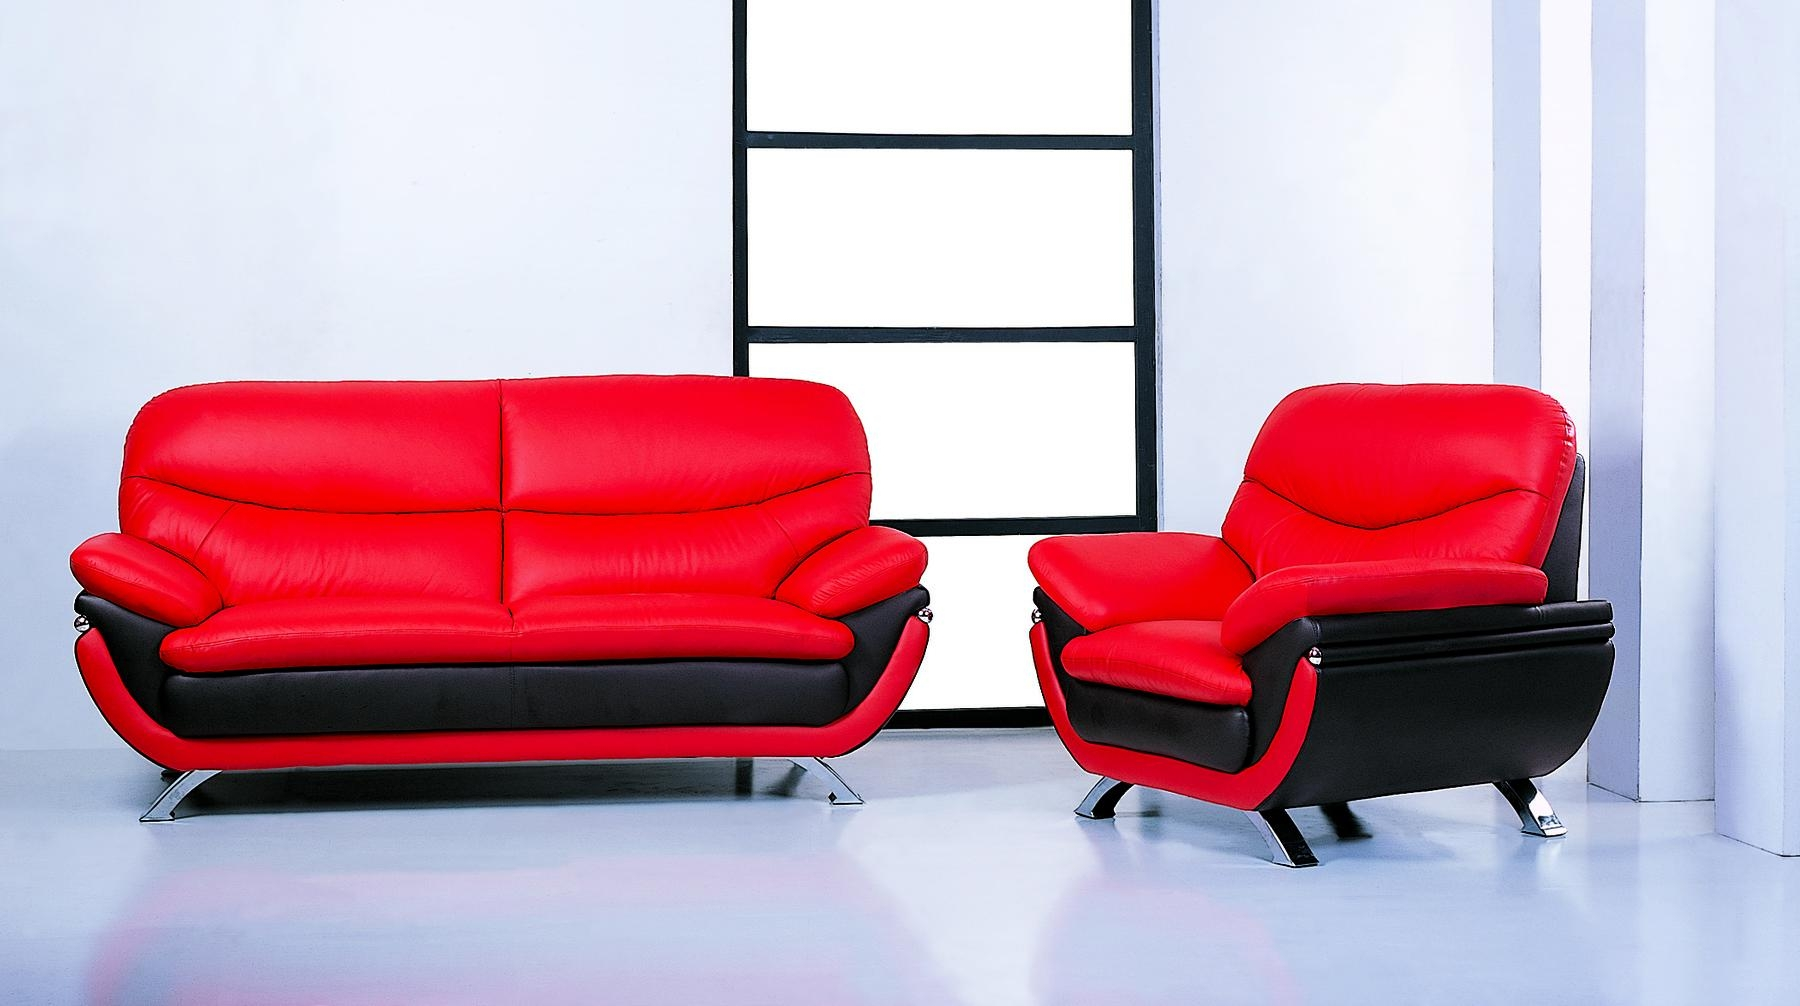 Red Sofa Red Sofa Set Black And Red Sofa Set Black And Red Sofa